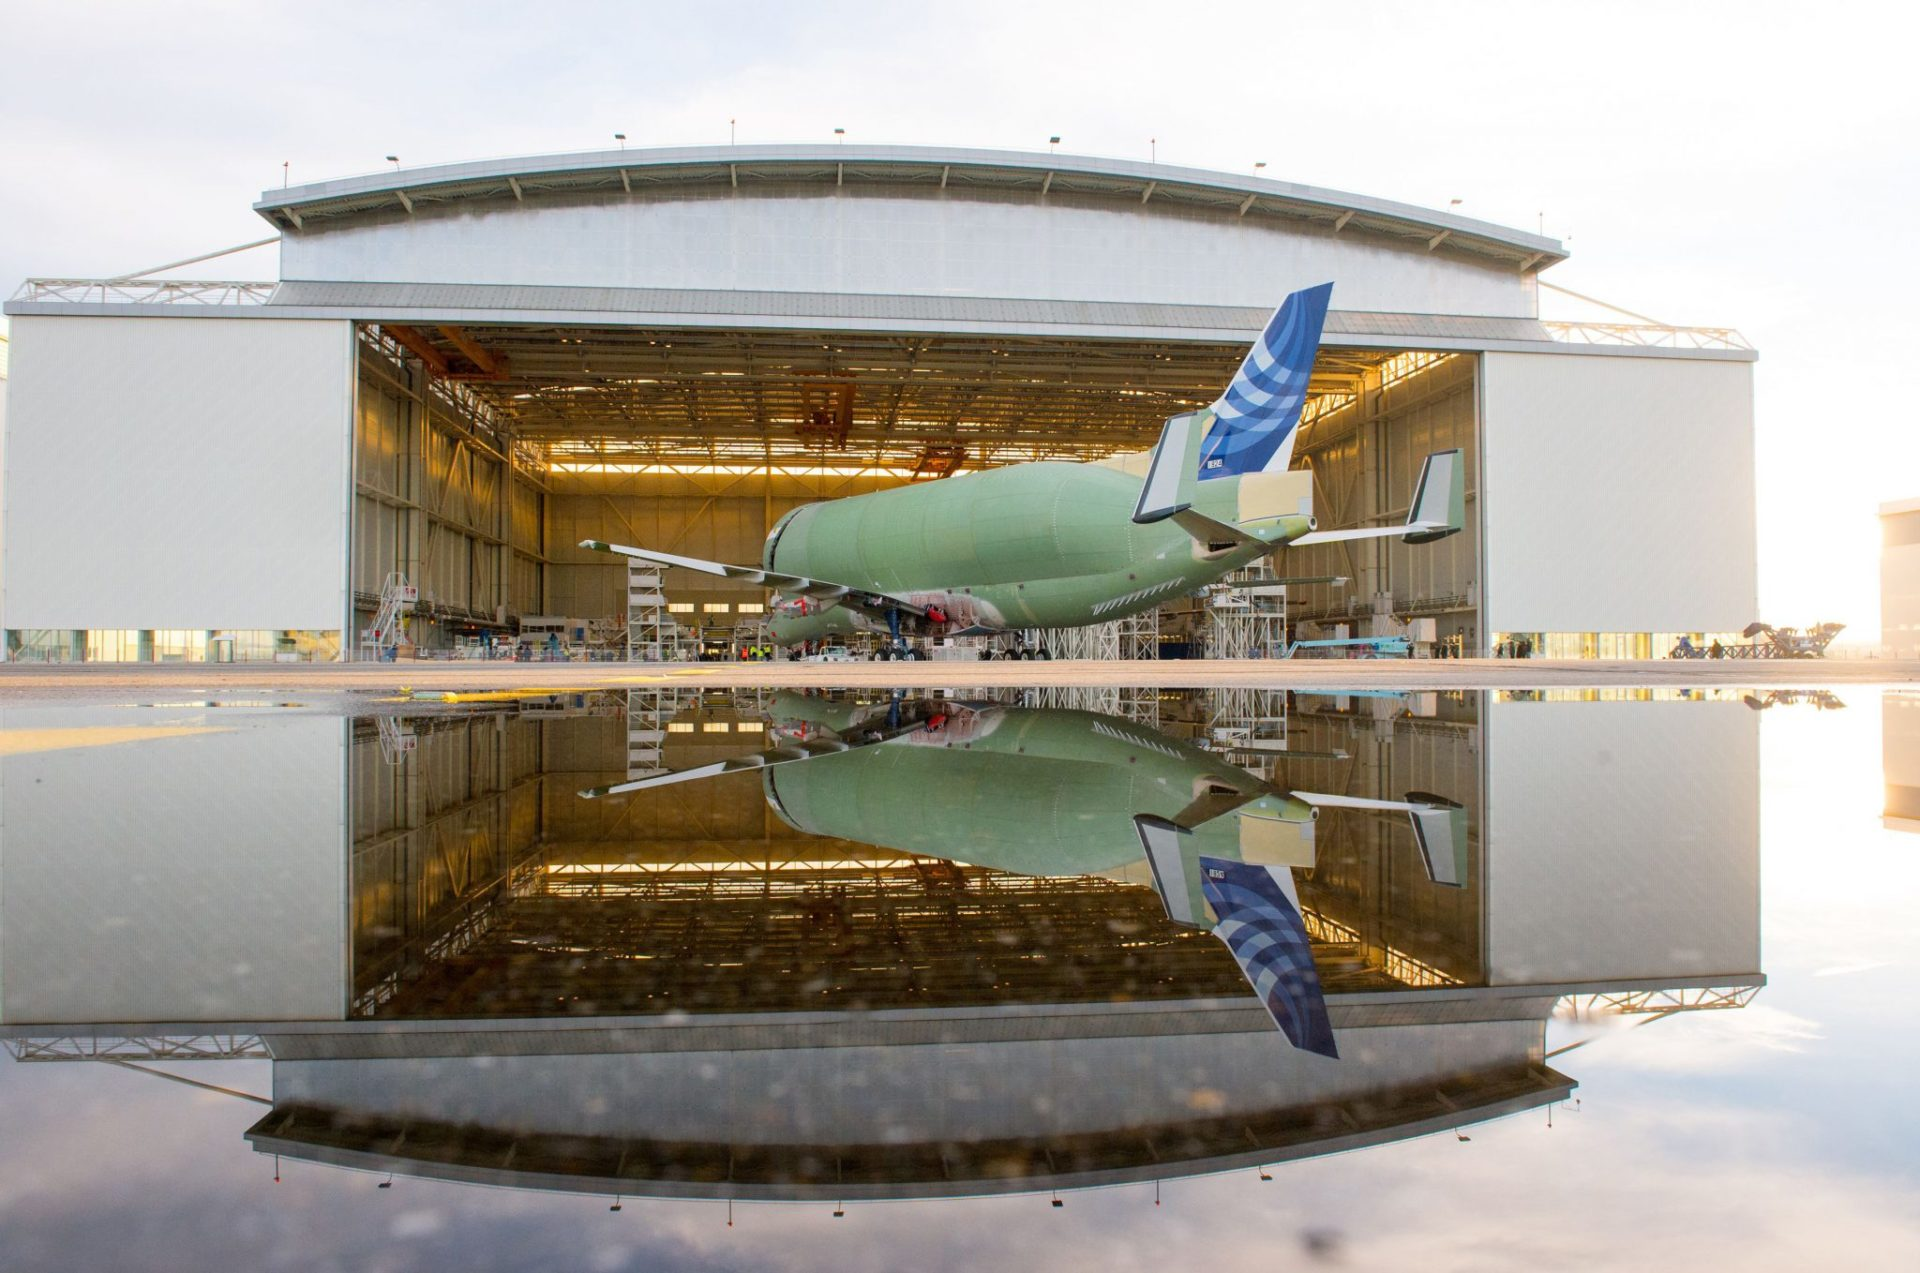 BelugaXL No1 rolls out of the hangar (Image: P.Masclet/Airbus)